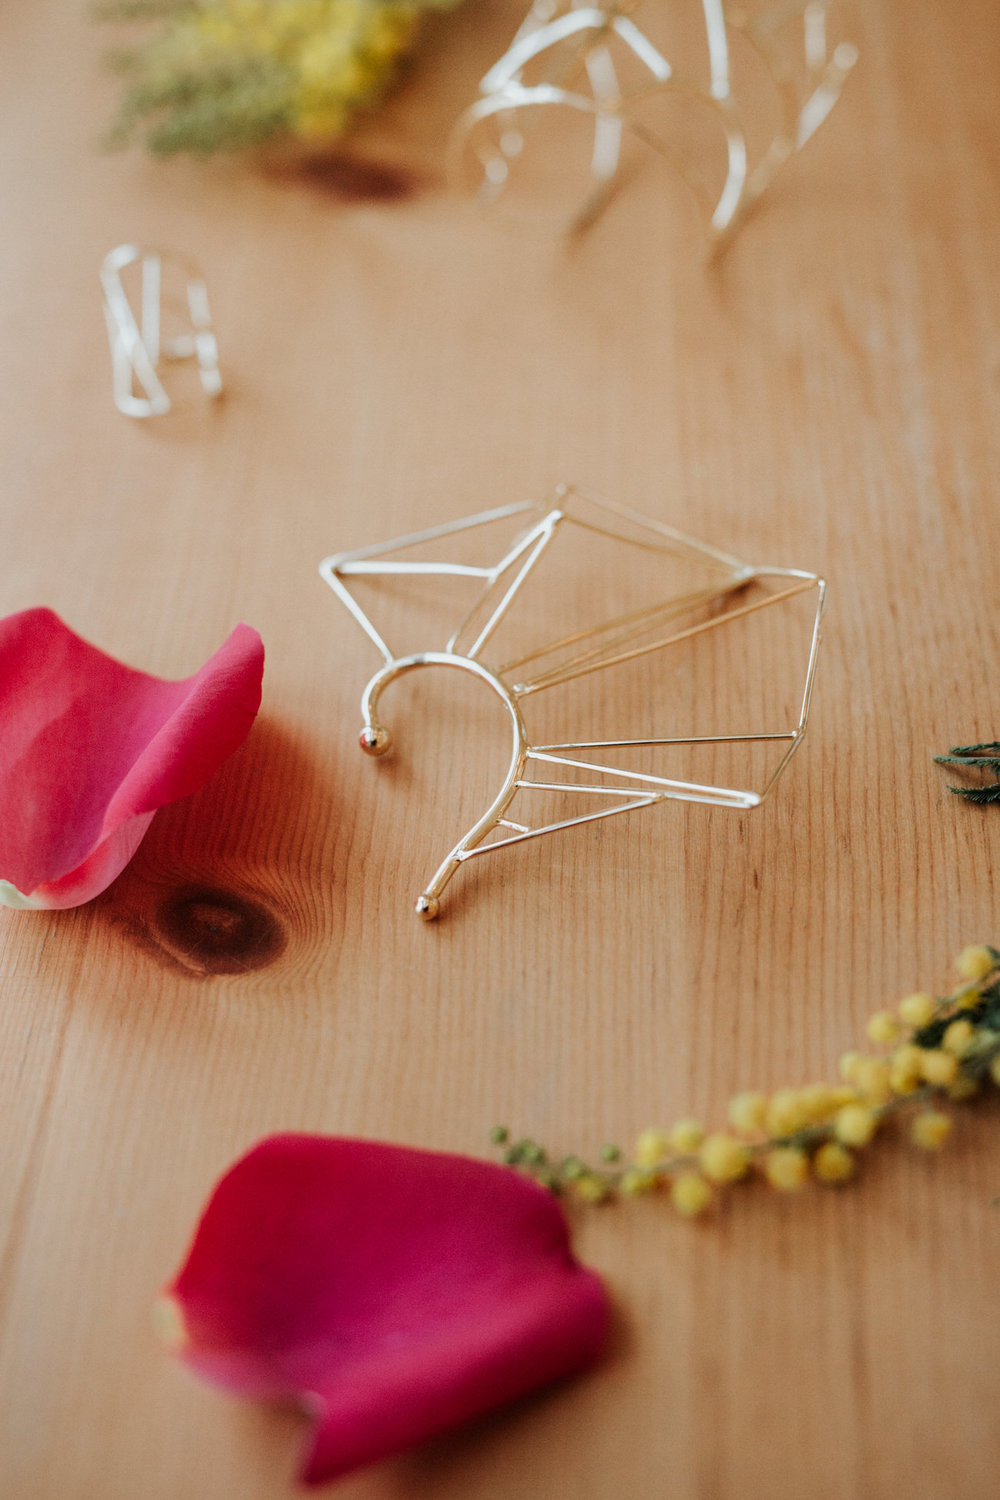 Beautiful geometric handmade jewelry